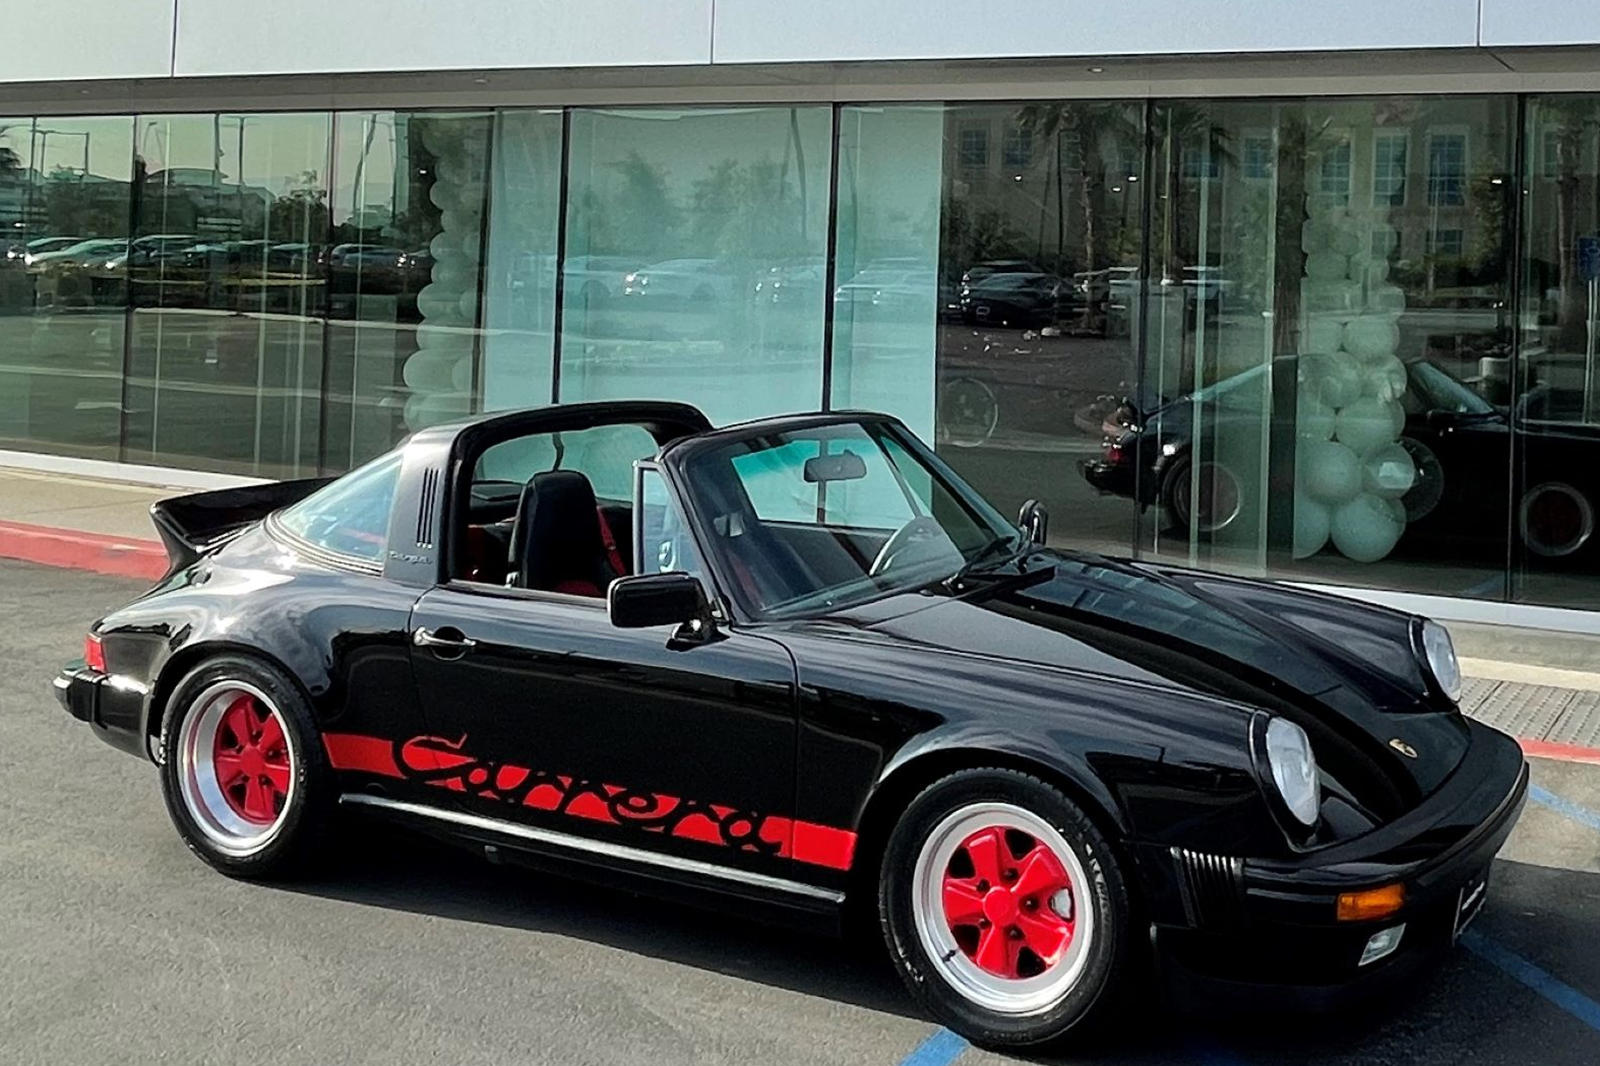 Official: This Is The Best Classic Porsche In The Country